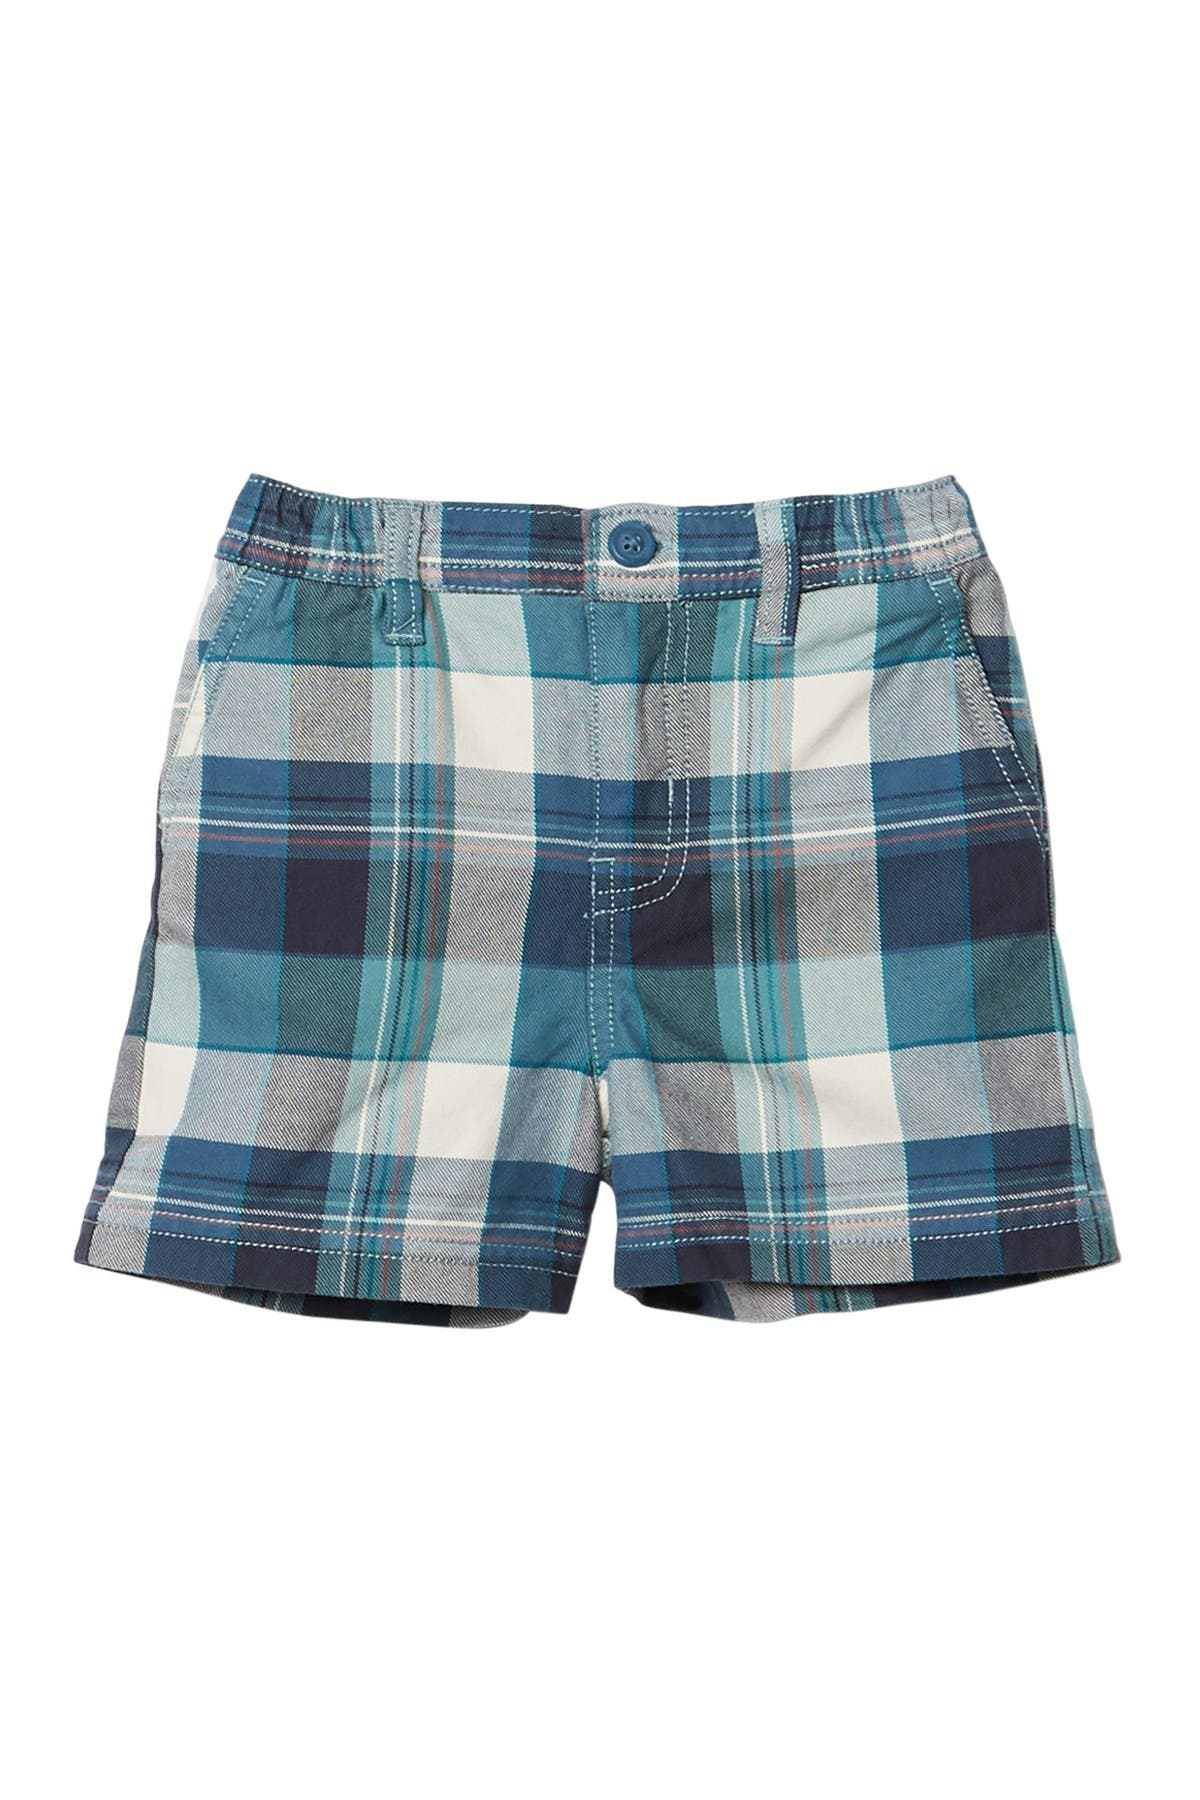 Image of Tea Collection Travel Shorts